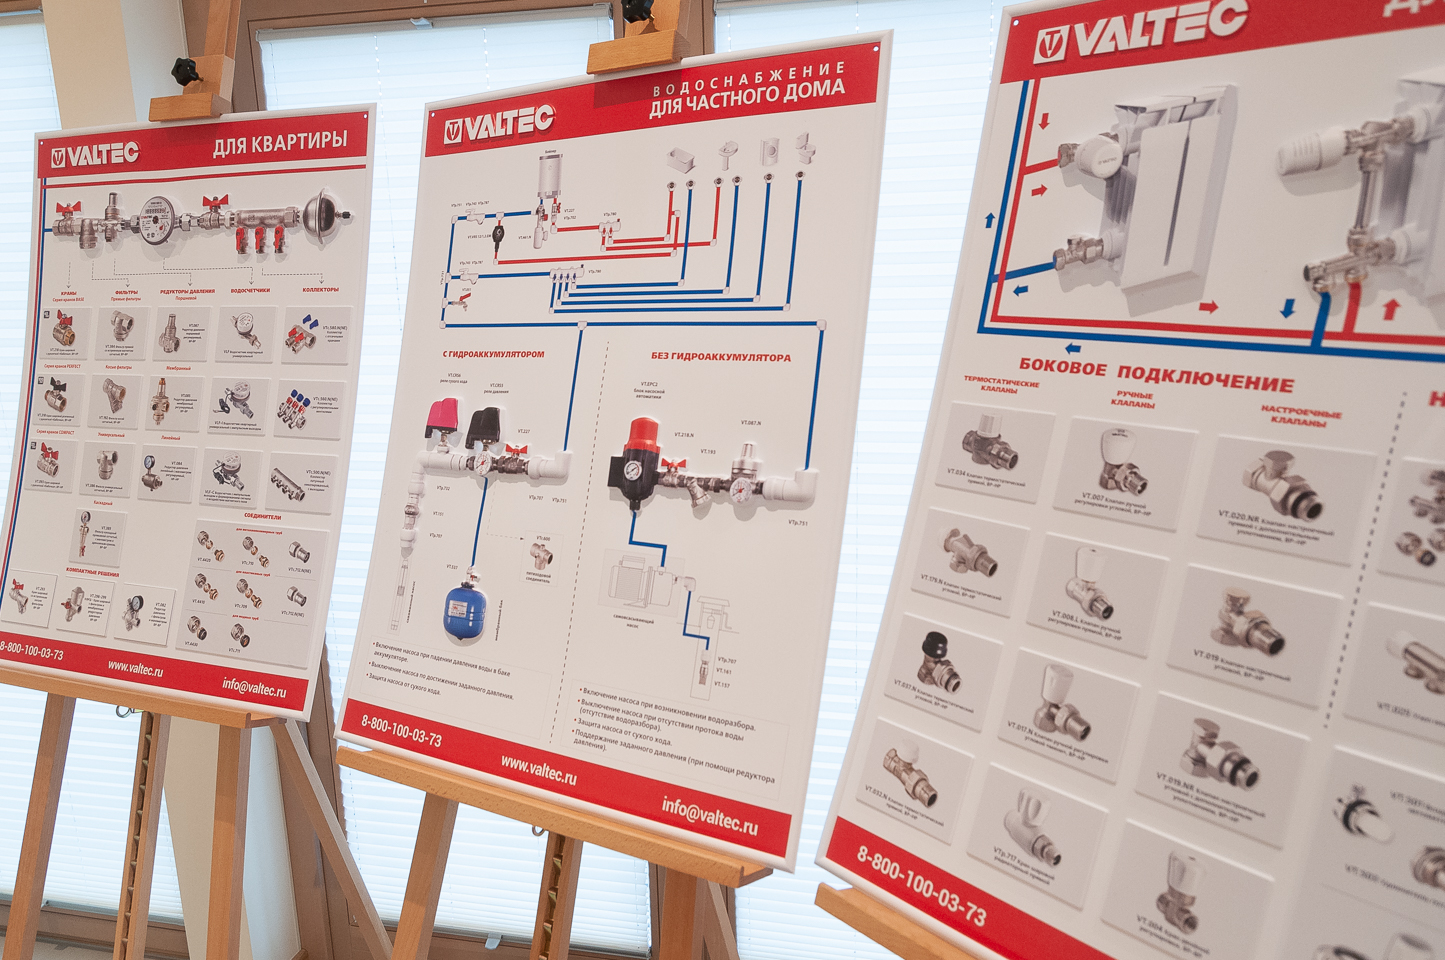 VALTEC products and strategy